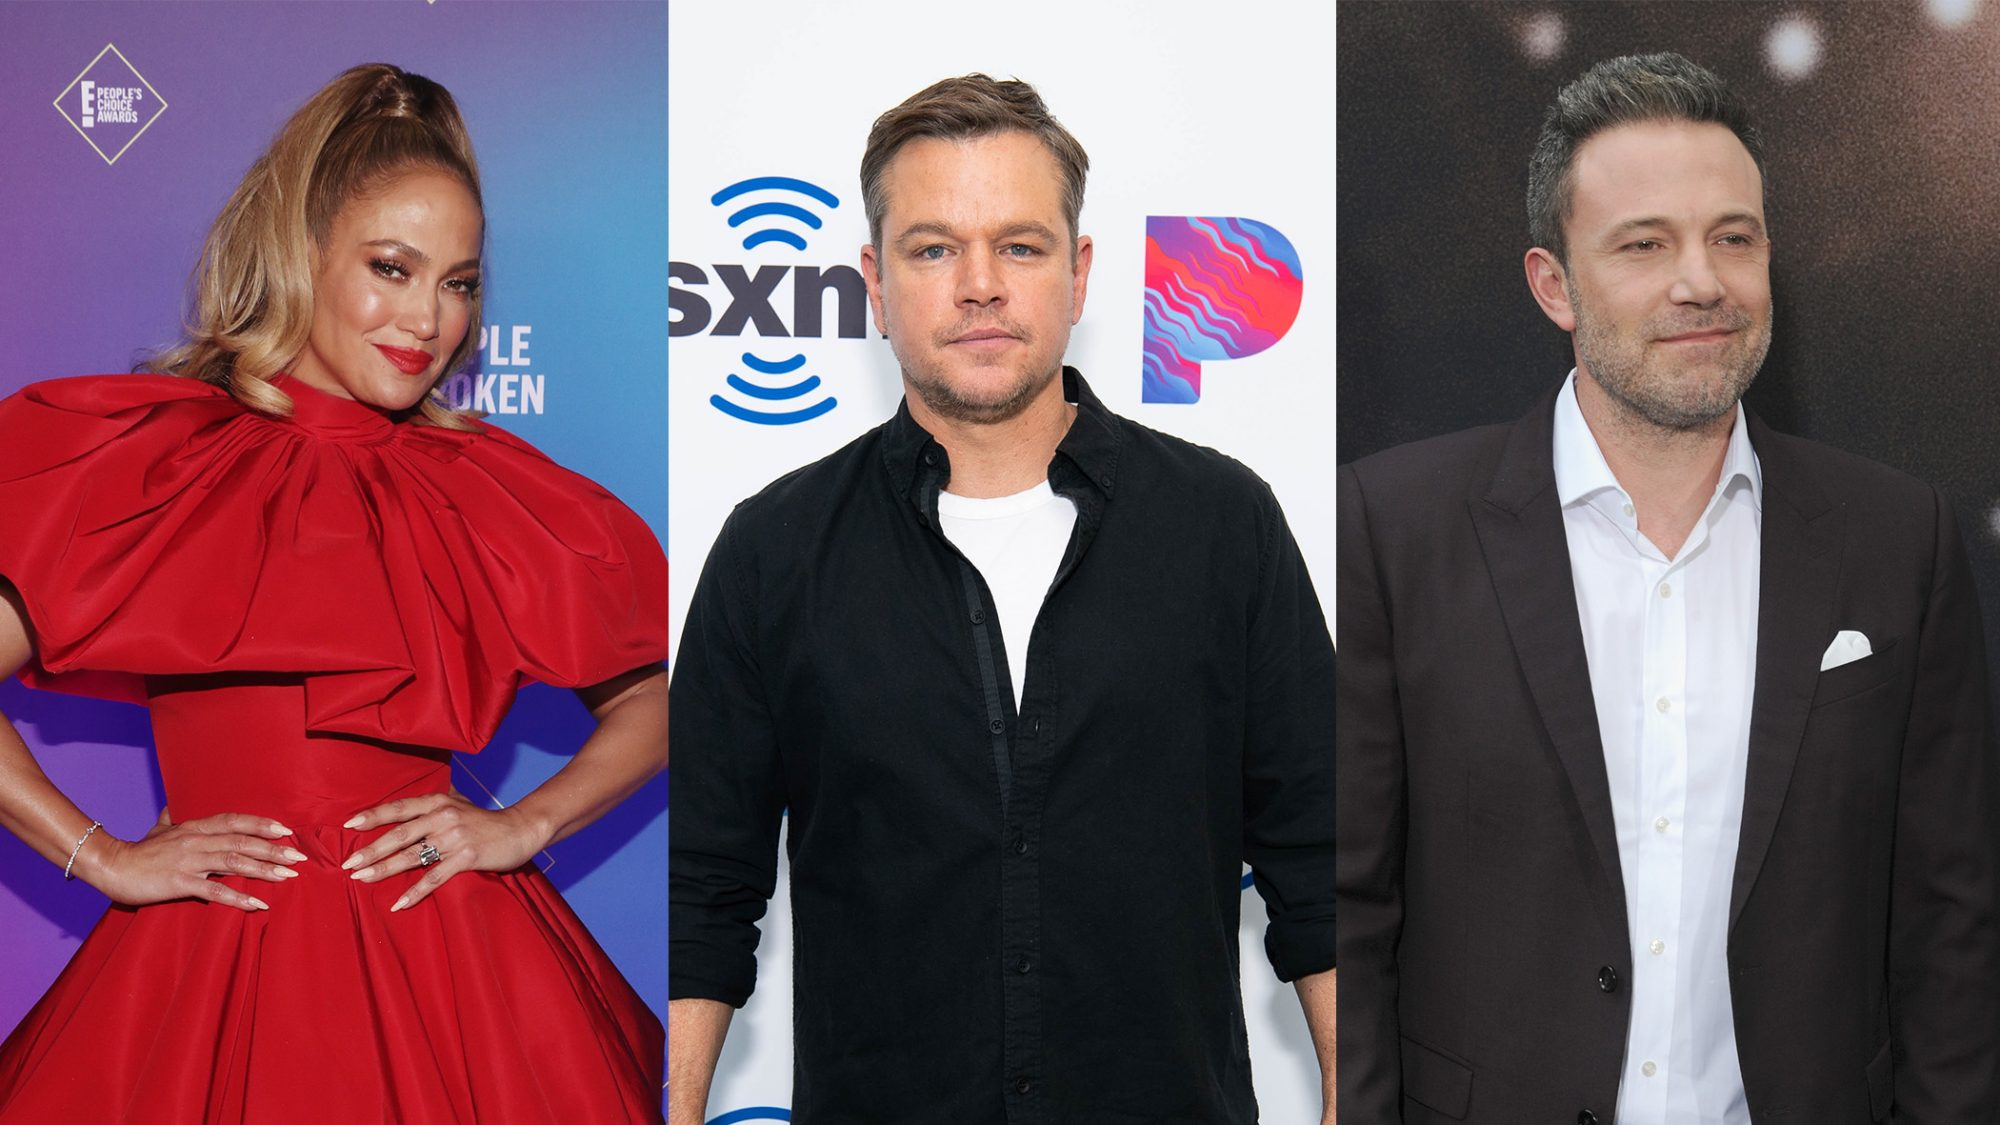 Jennifer Lopez, Matt Damon, and Ben Affleck